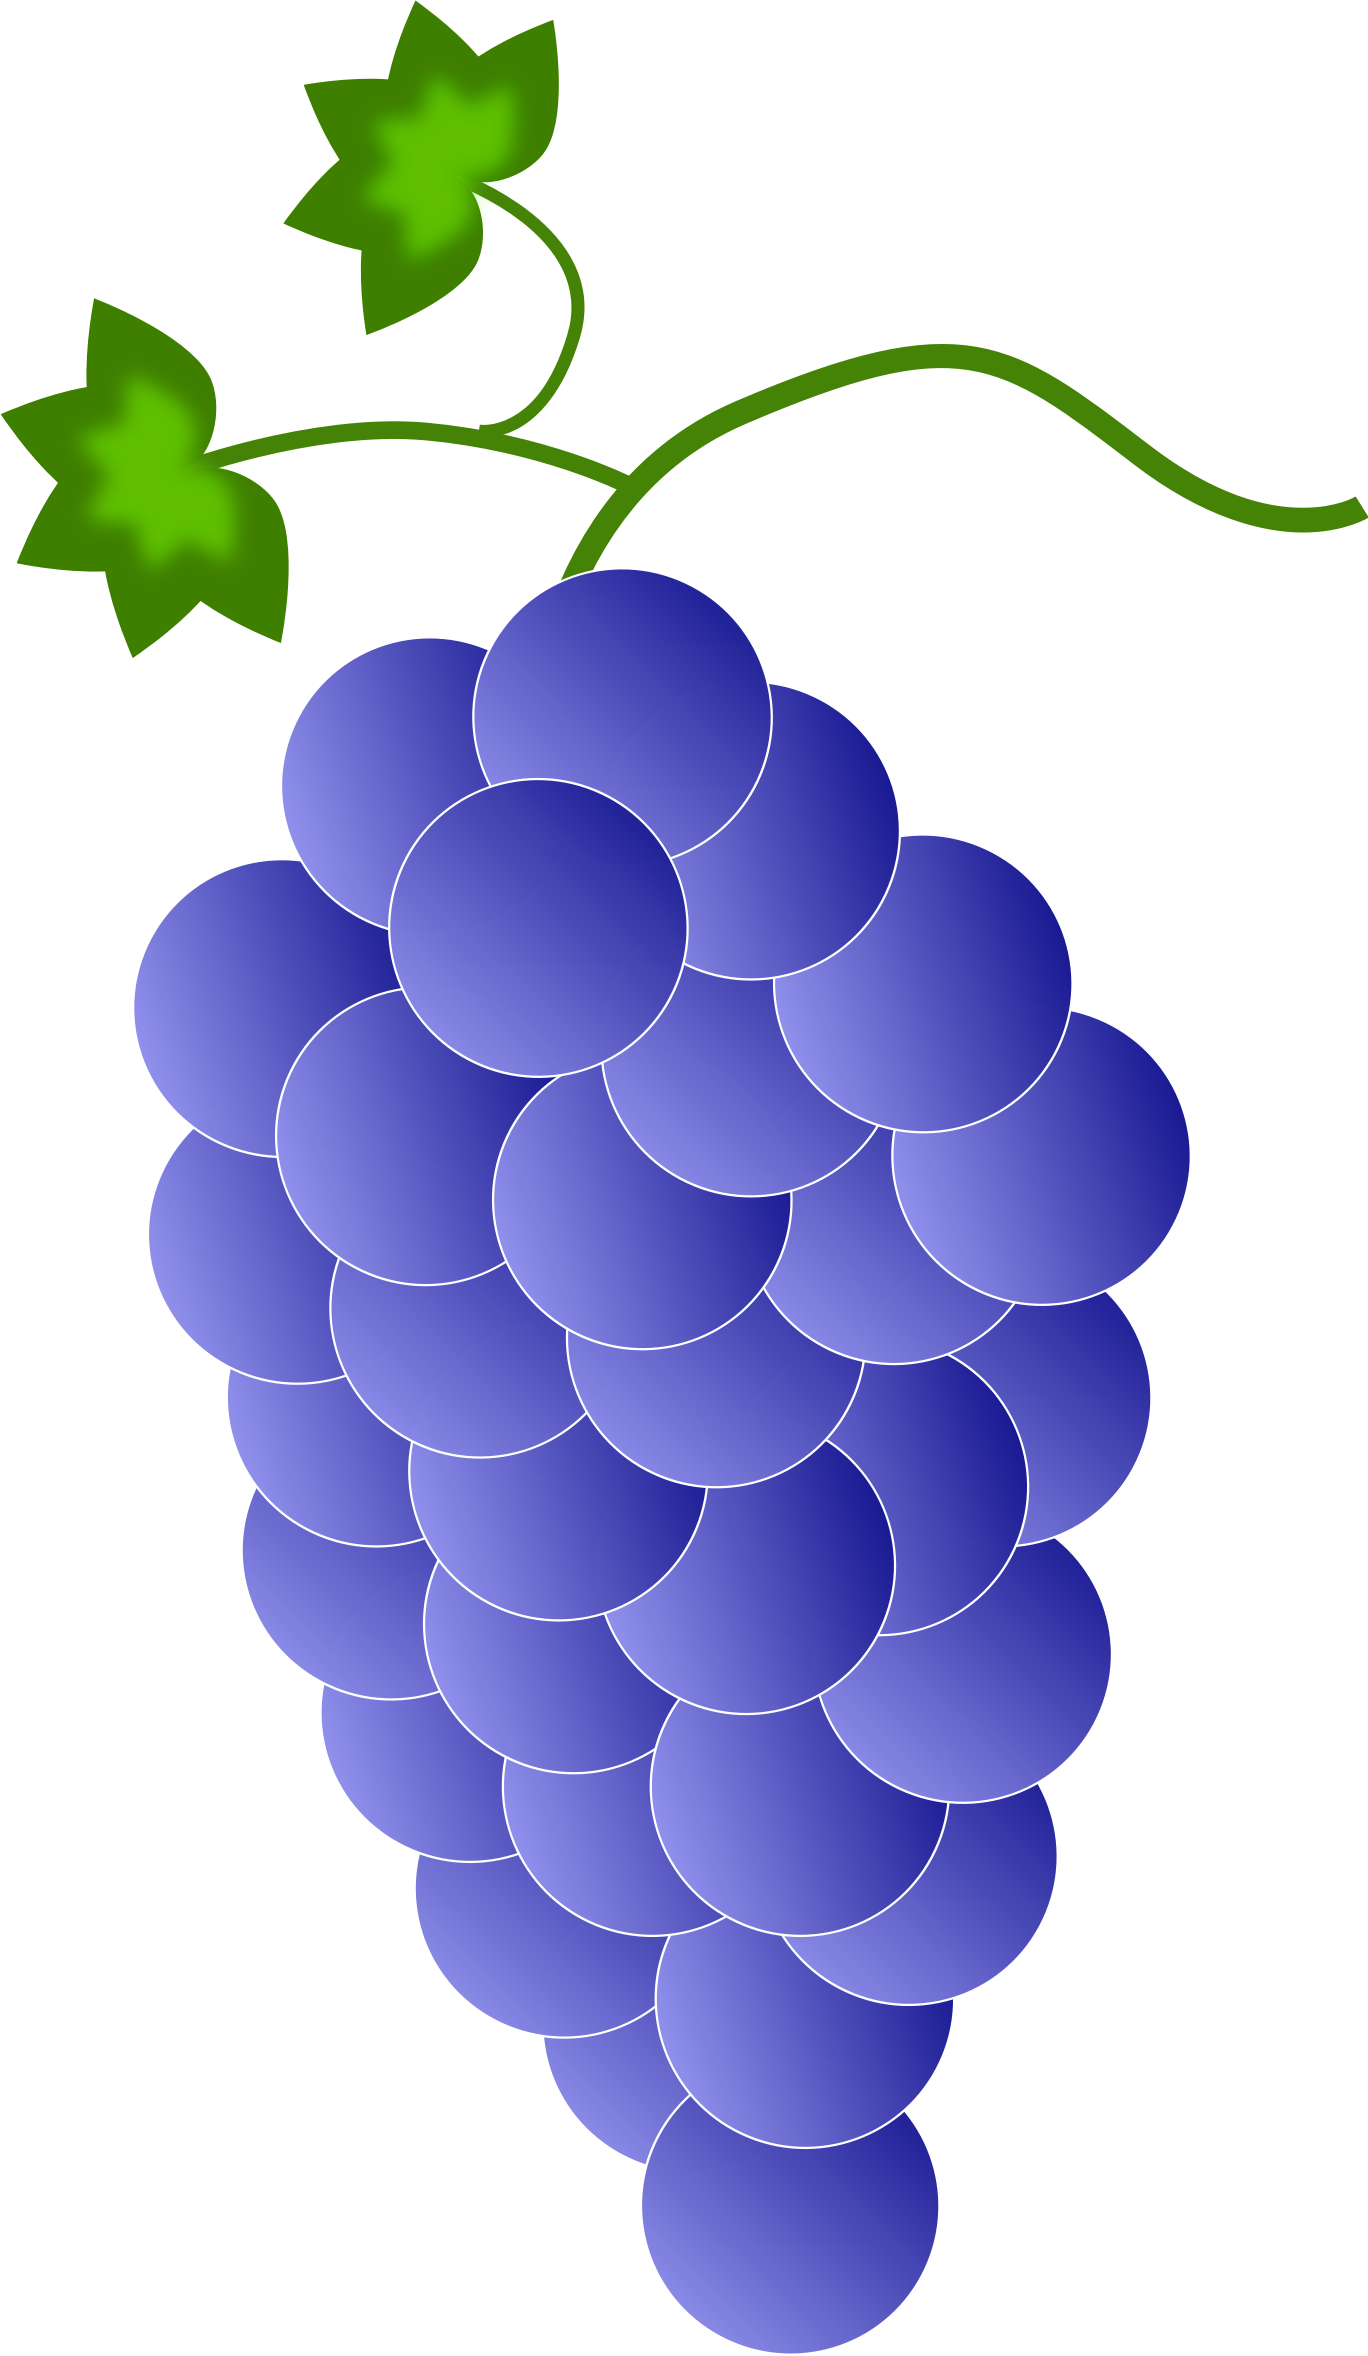 svg royalty free stock Grapes violet blue big. Colored clipart